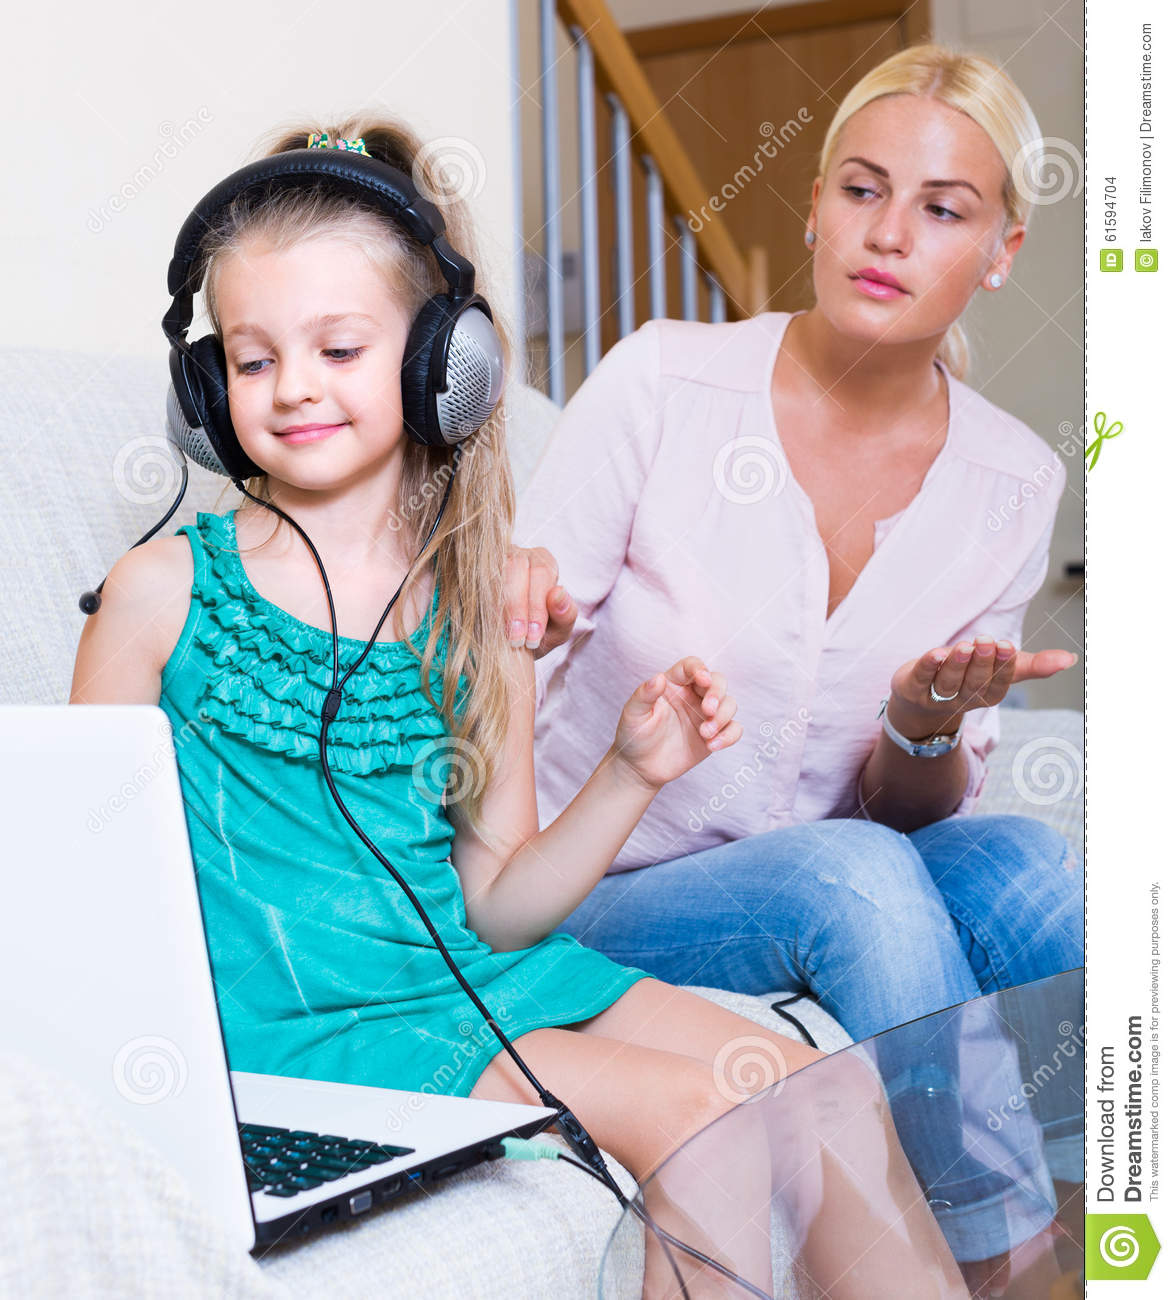 Little Girl Playing Computer Game Stock Photo - Image of